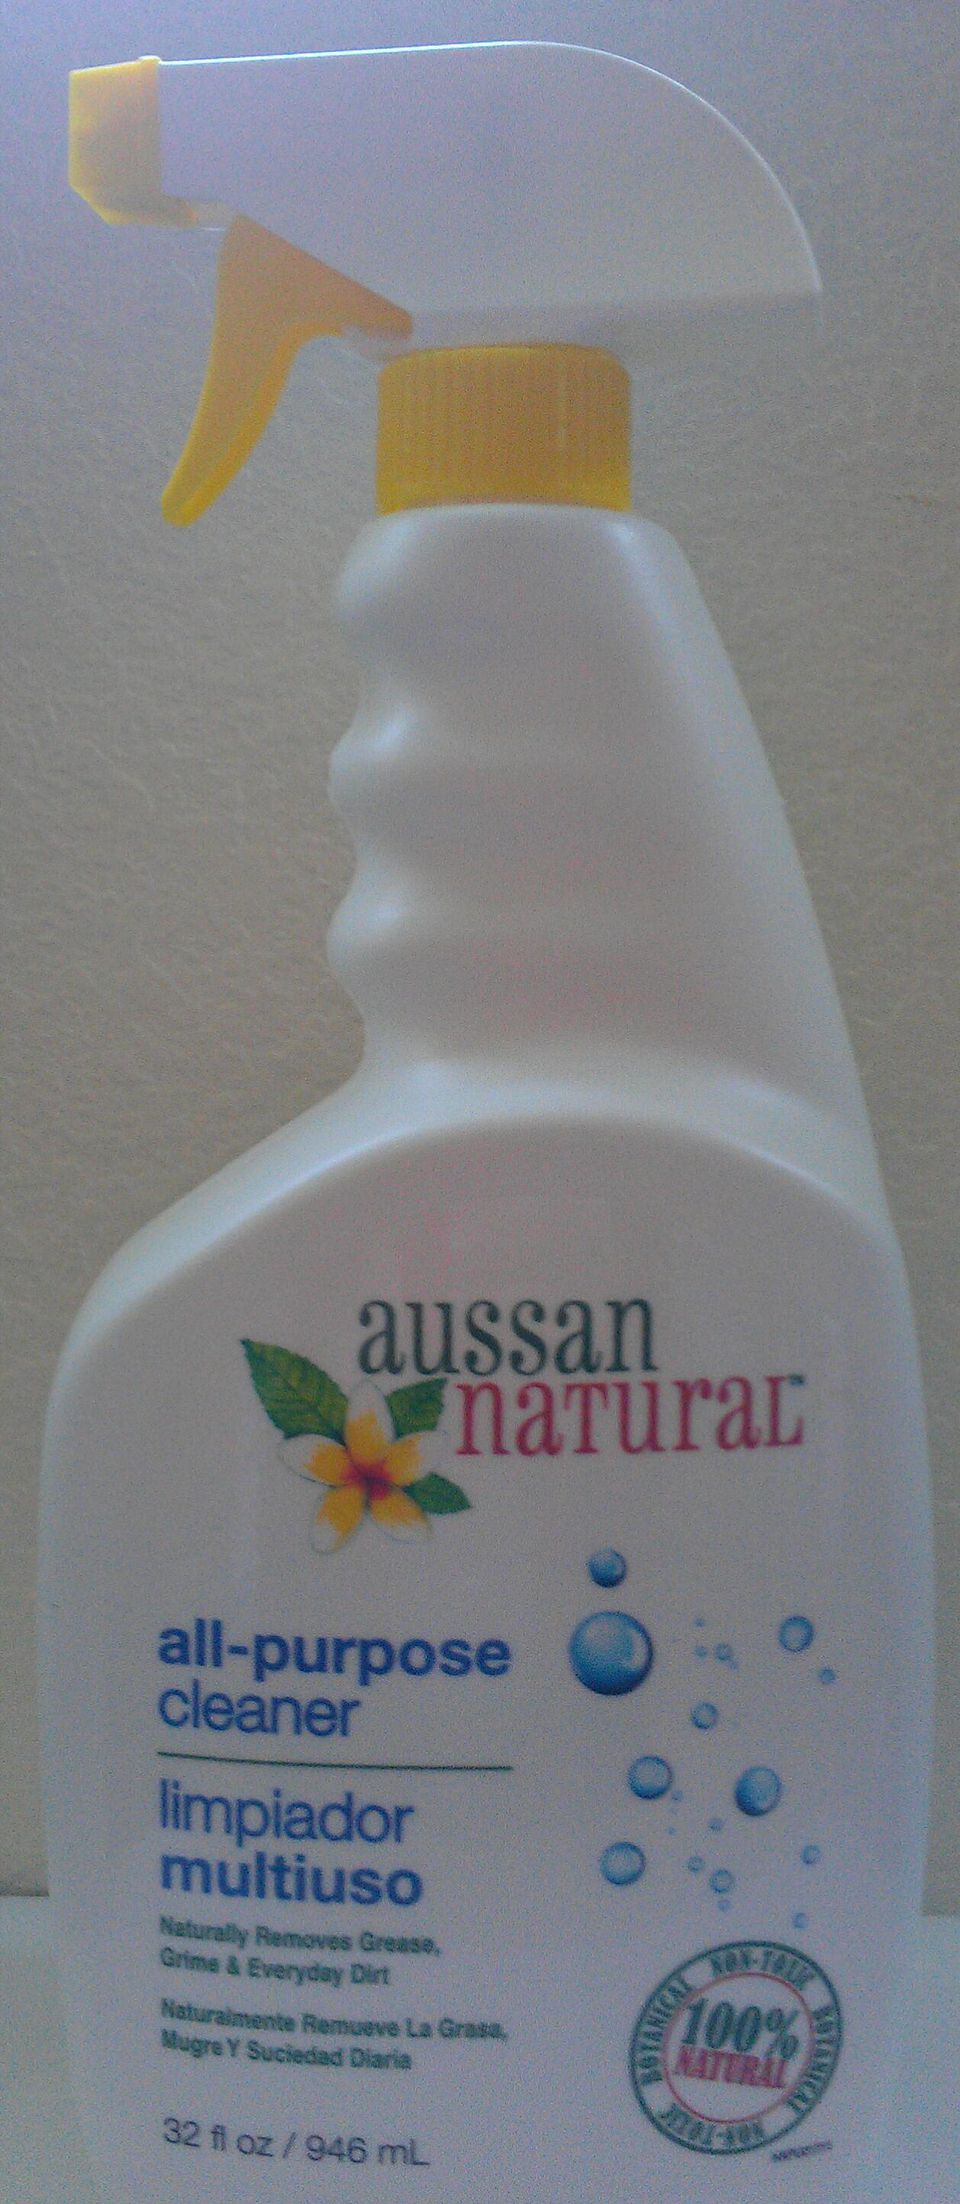 Aussan's Natural All-Purpose Cleaner Cleans Stainless Steel